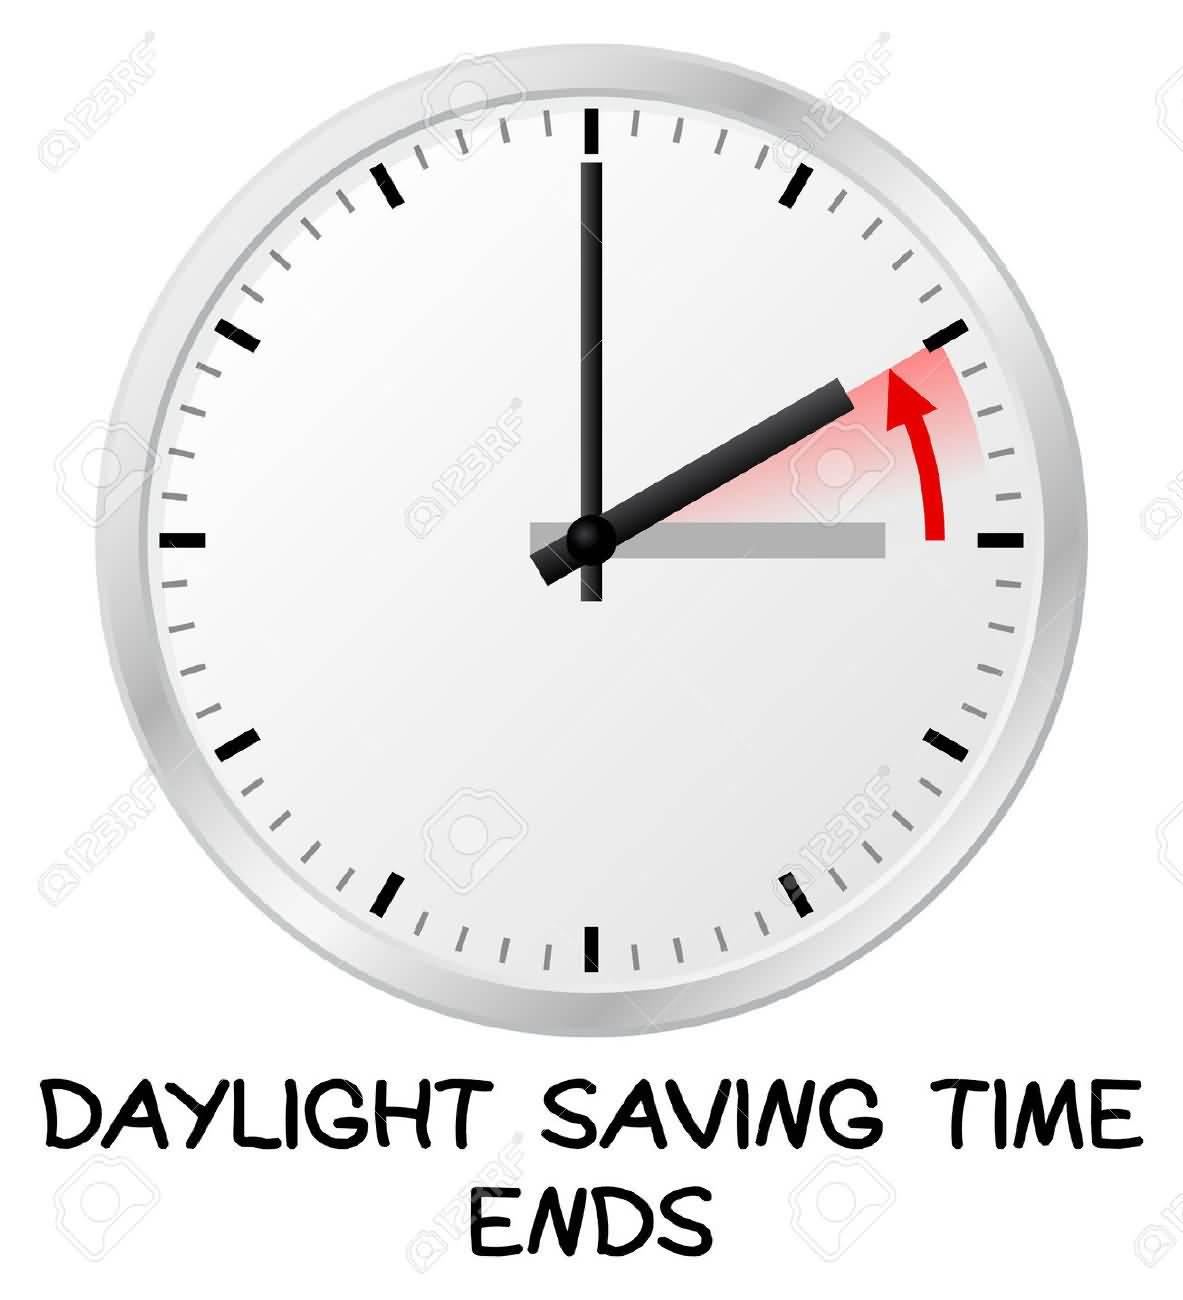 40 best daylight saving time ends pictures and images daylight savings time 2018 clip art daylight savings time 2018 clip art church